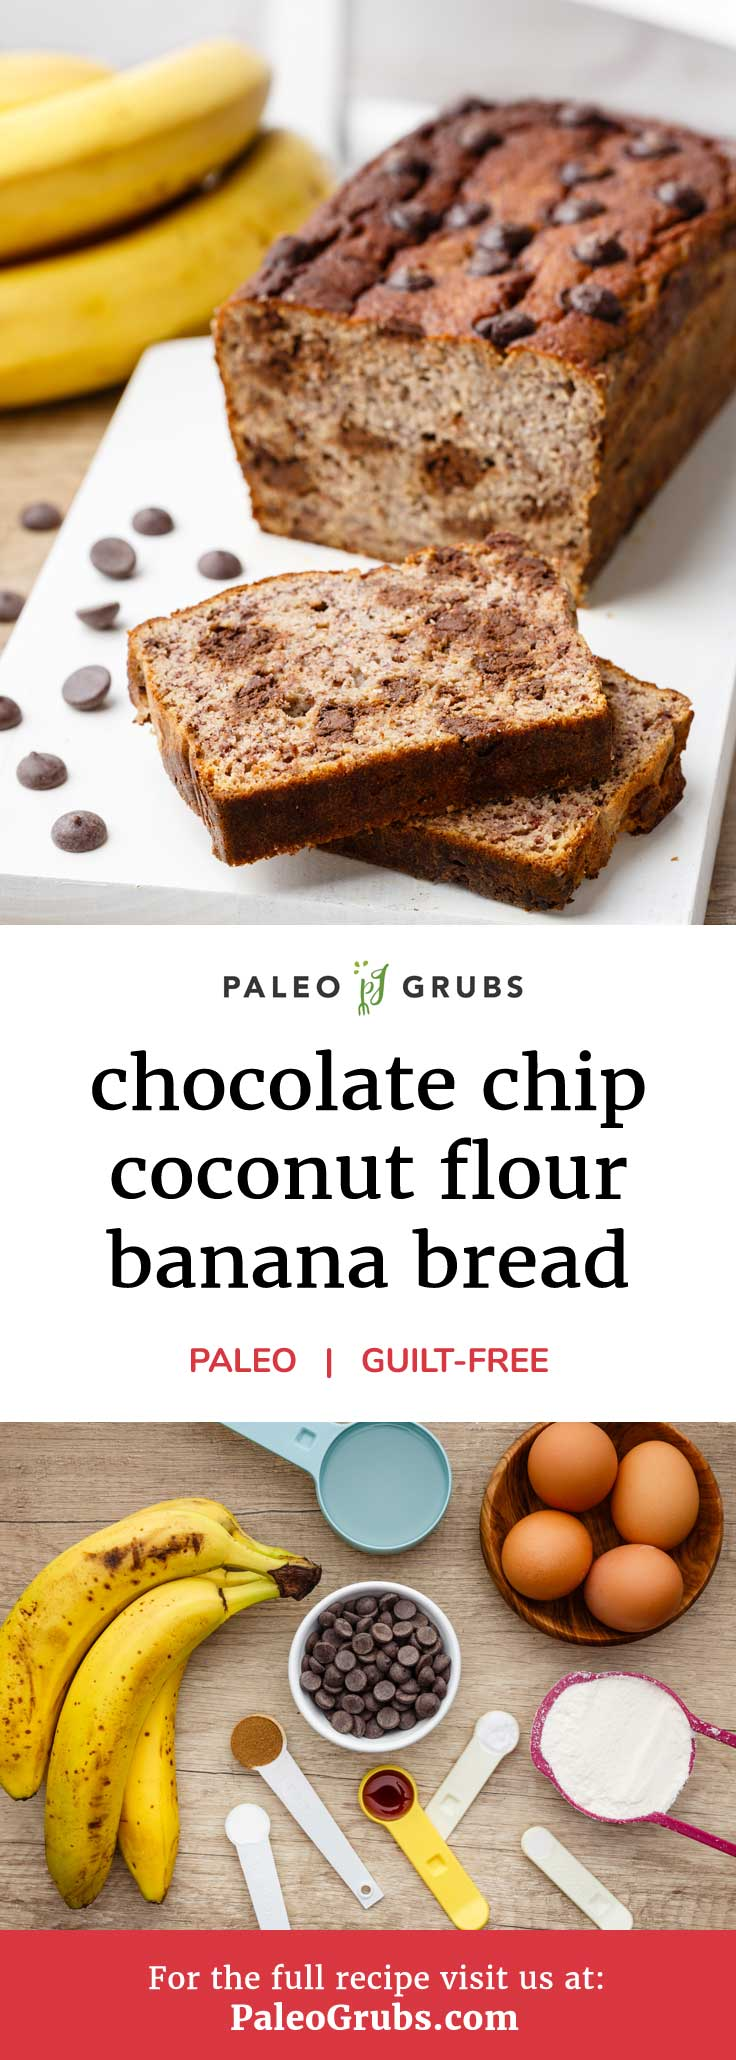 If you love banana bread then this is one paleo recipe that you won't want to miss. Each and every bite of this delicious chocolate chip banana bread fuels your body and soul. YUM!